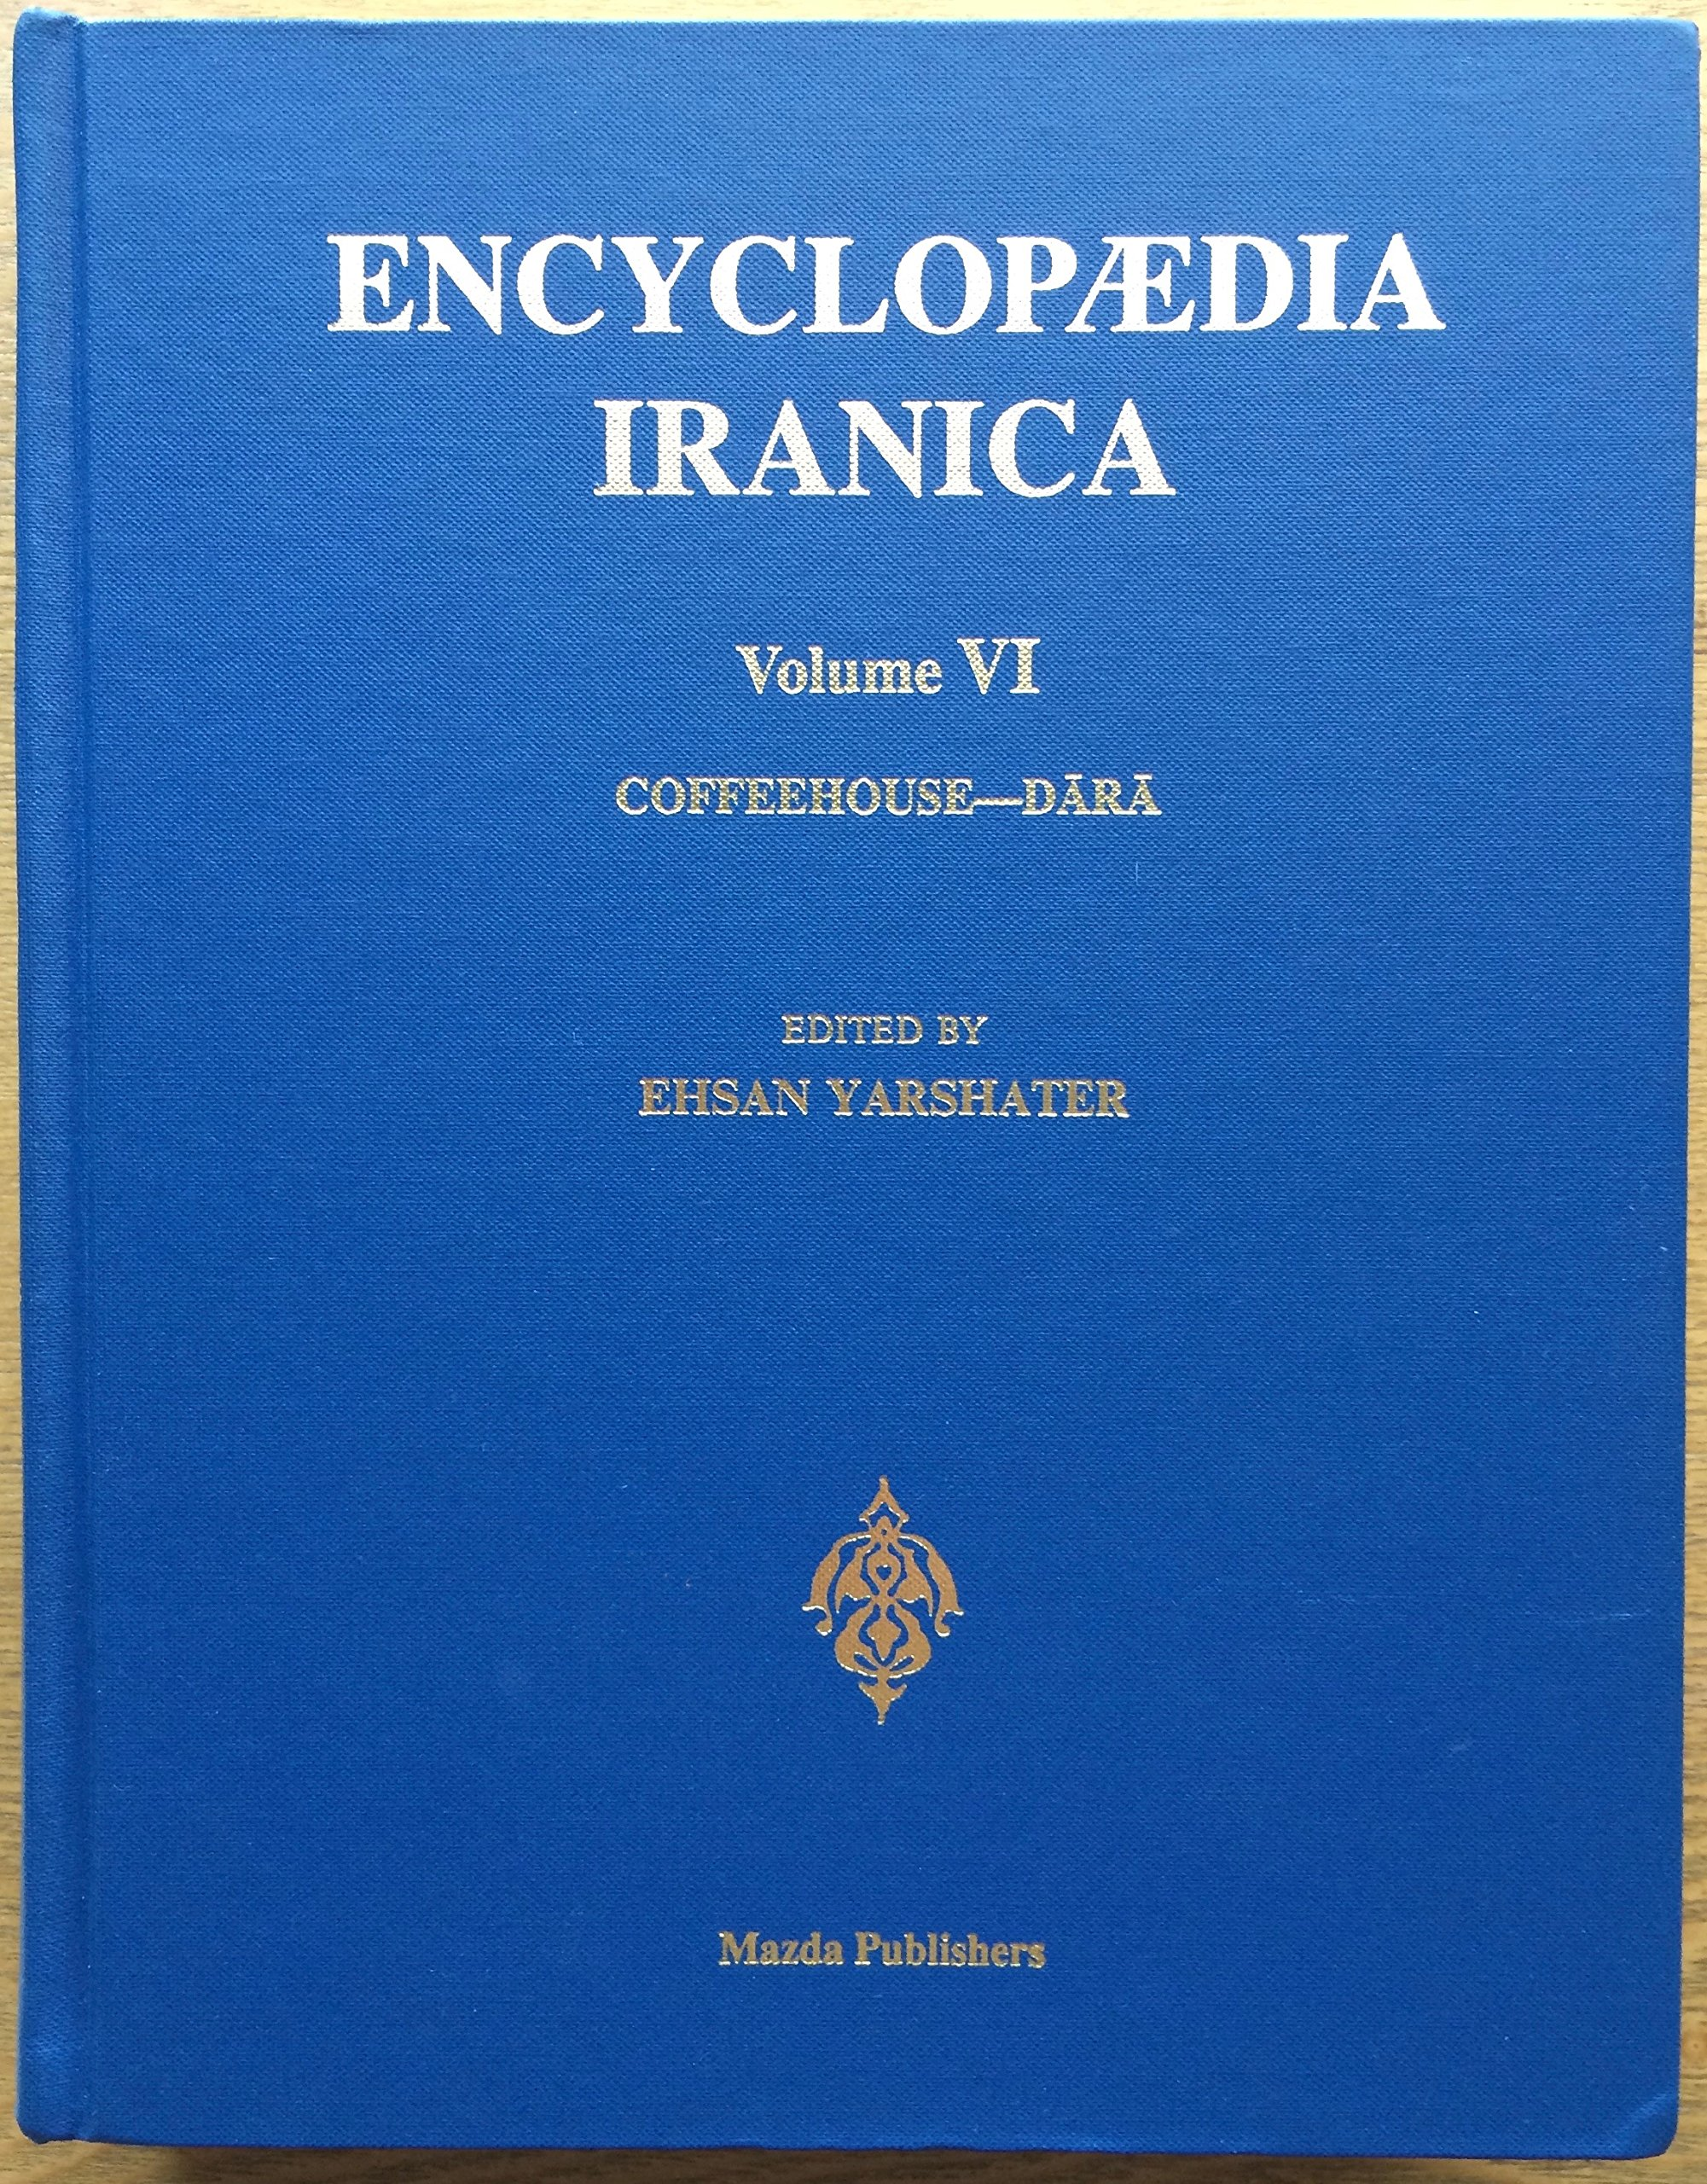 Encyclopaedia Iranica: 9781568590073: Amazon.com: Books